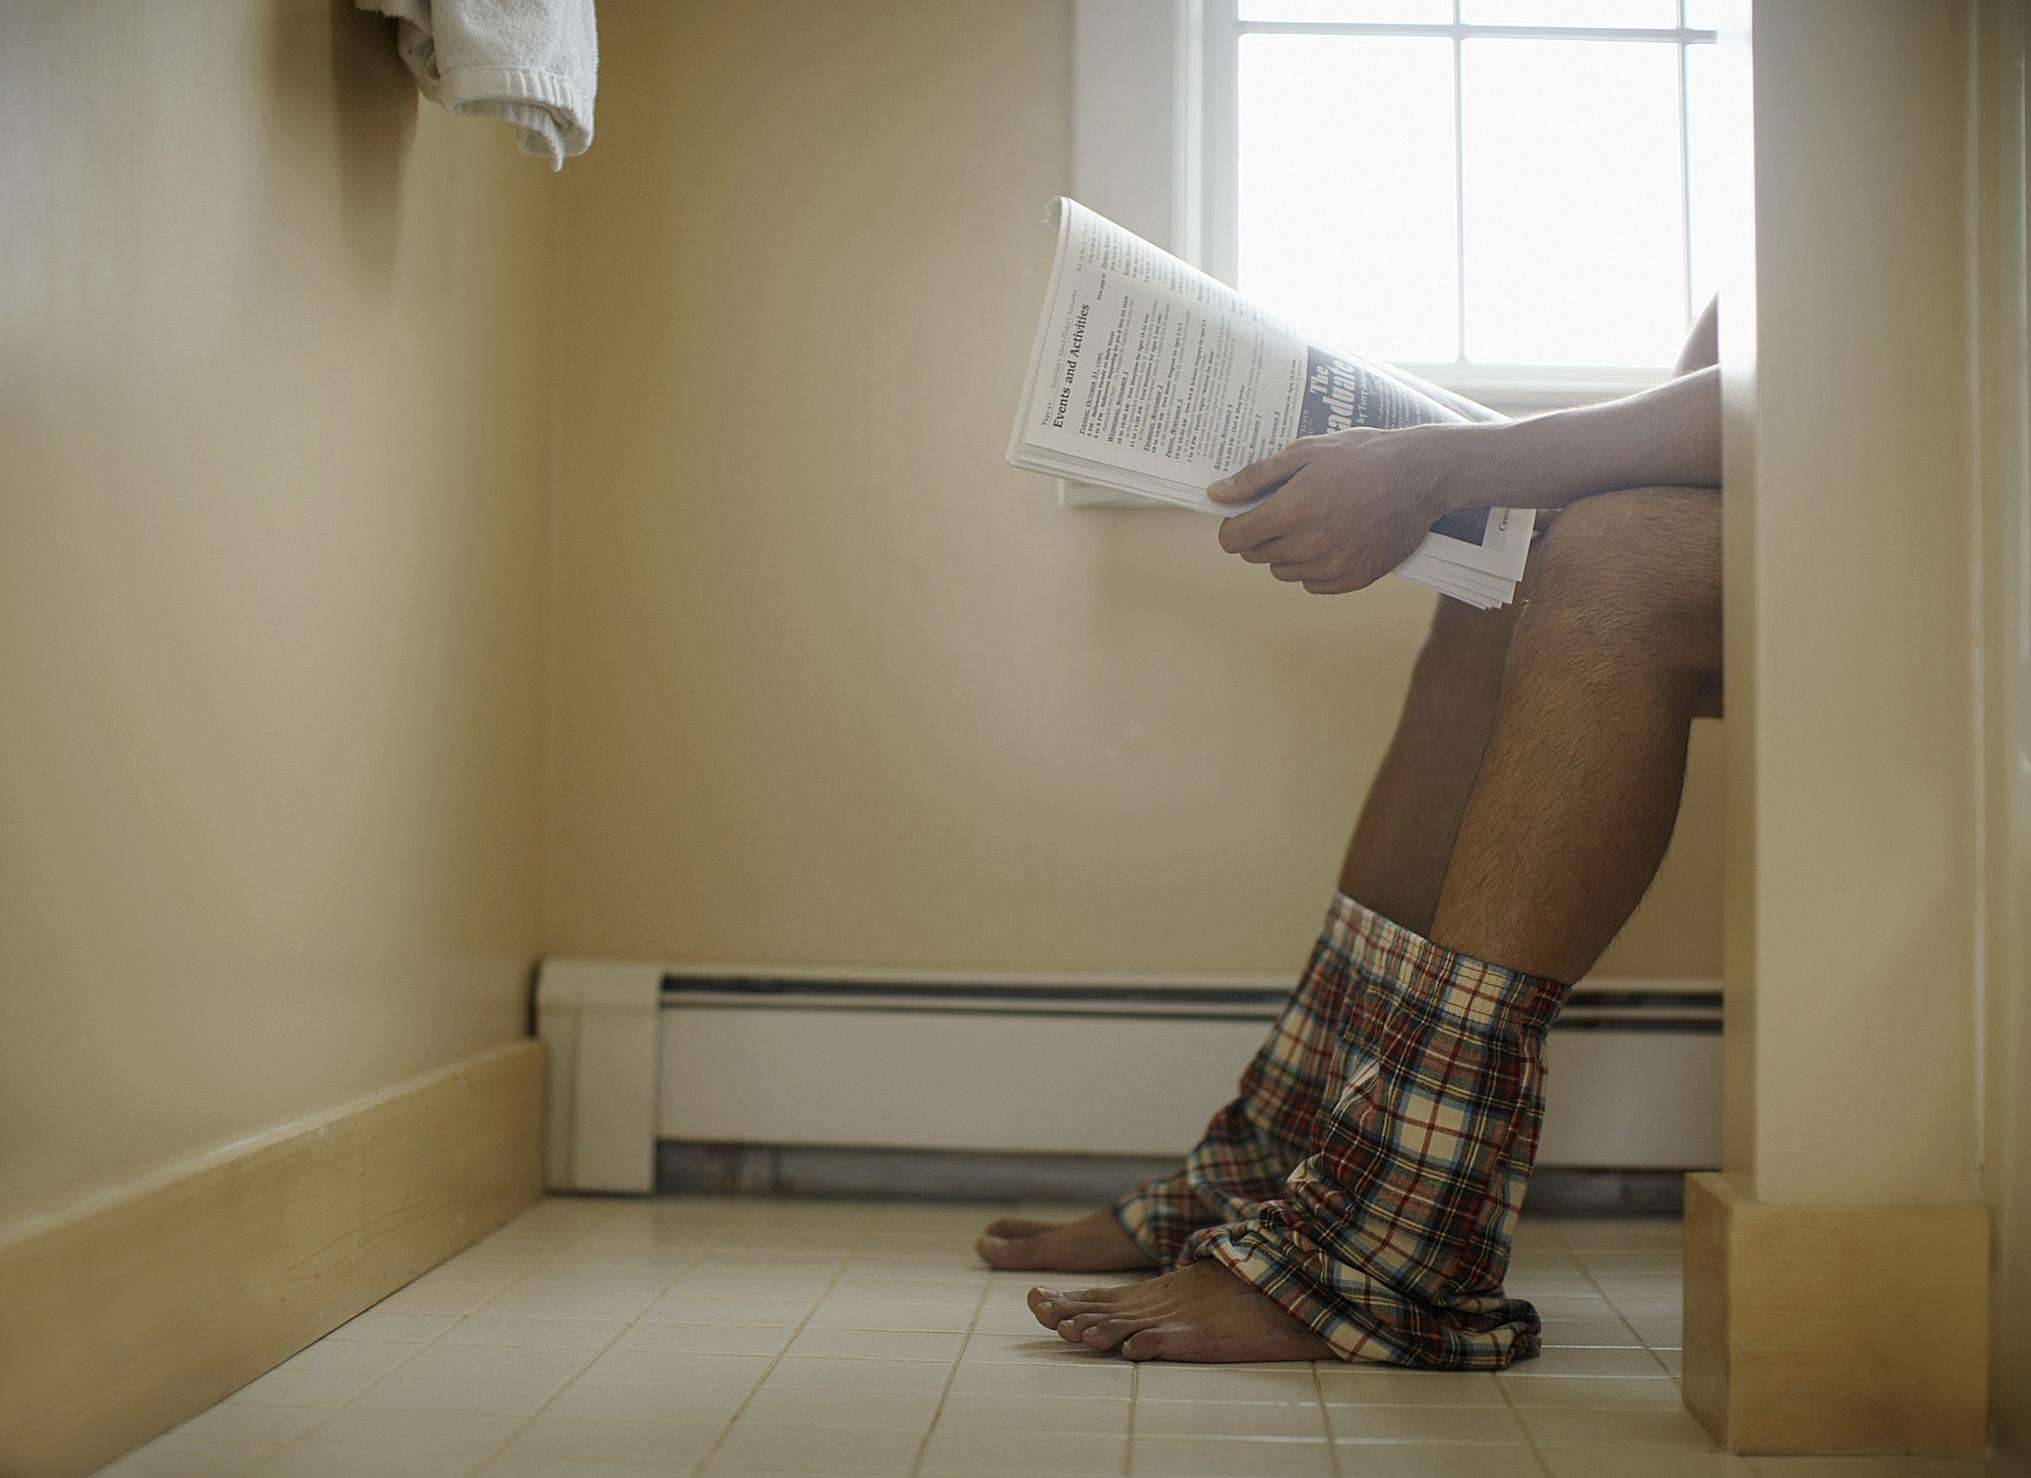 A man reading the paper on the toilet